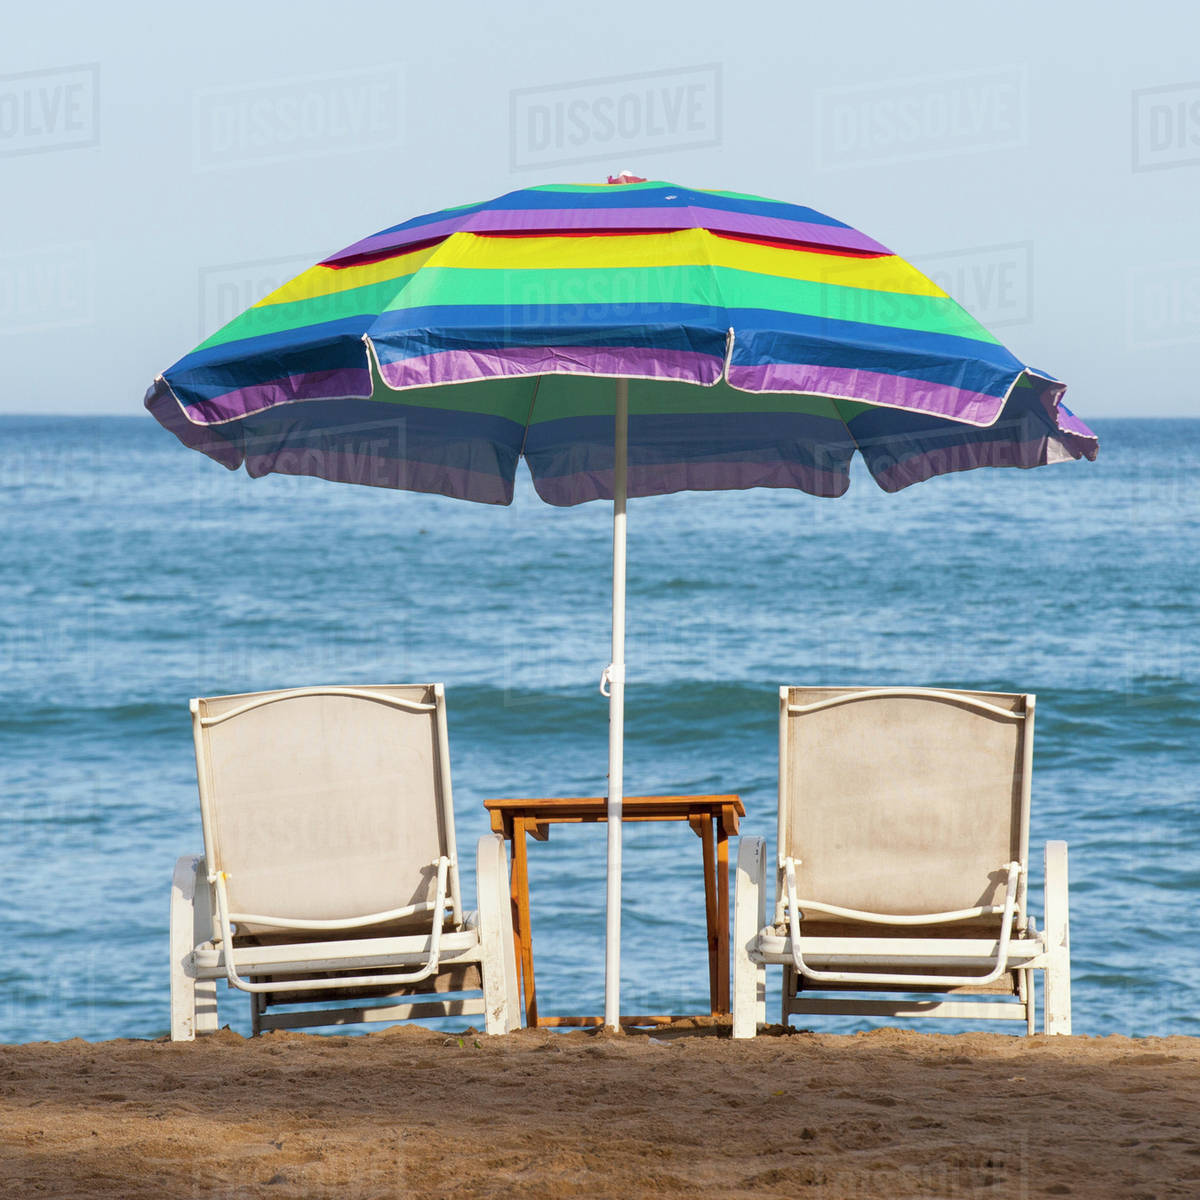 Beach Chairs With Umbrella A Rainbow Beach Umbrella Over Two Lounge Chairs On The Beach At The Water S Edge Sayulita Mexico Stock Photo